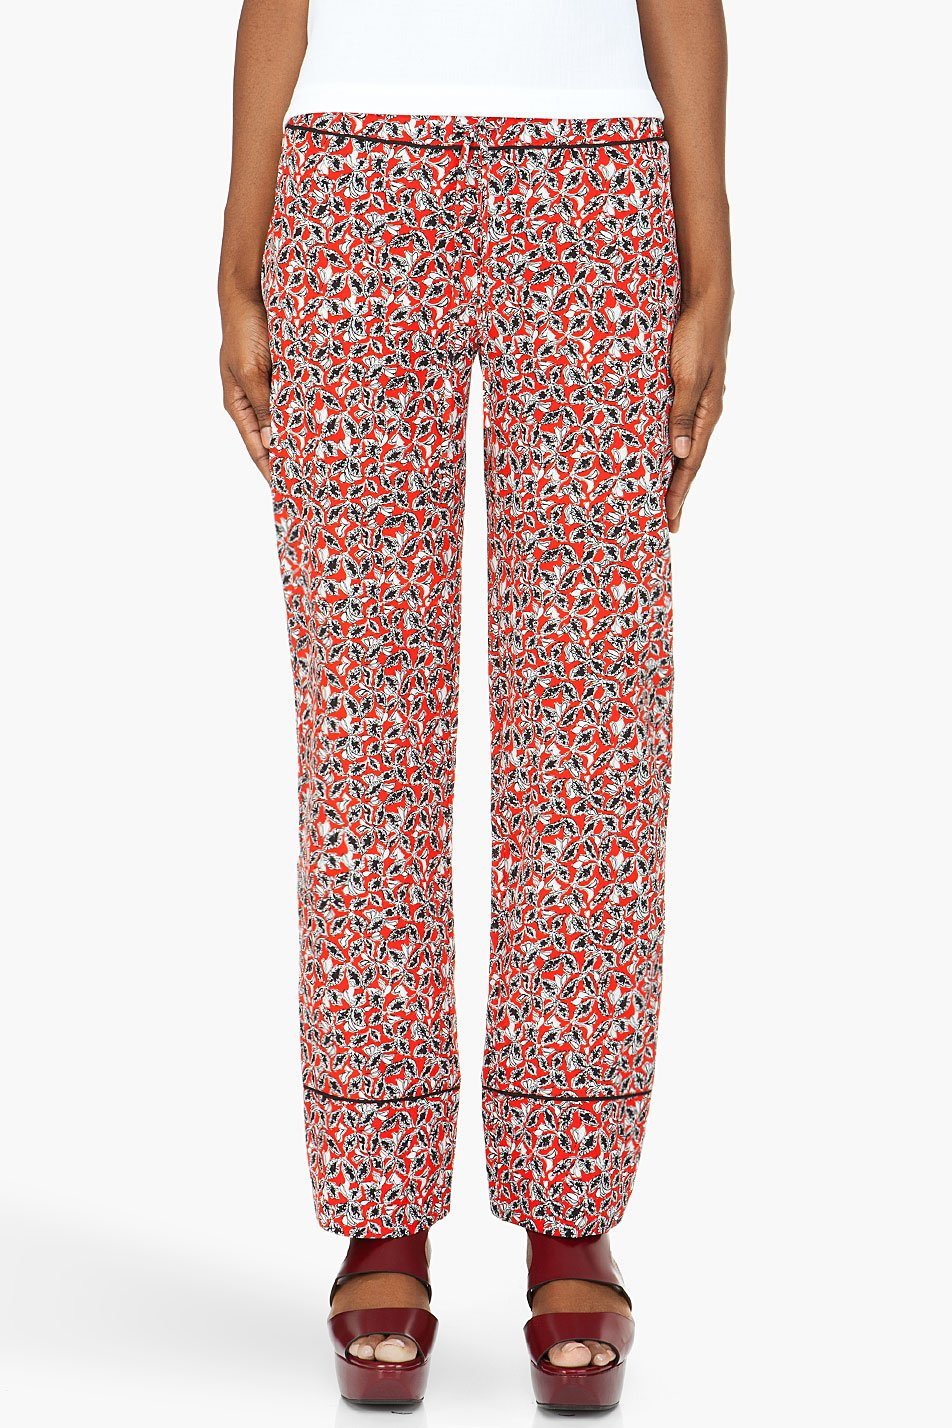 marni edition red printed crepe silk trousers